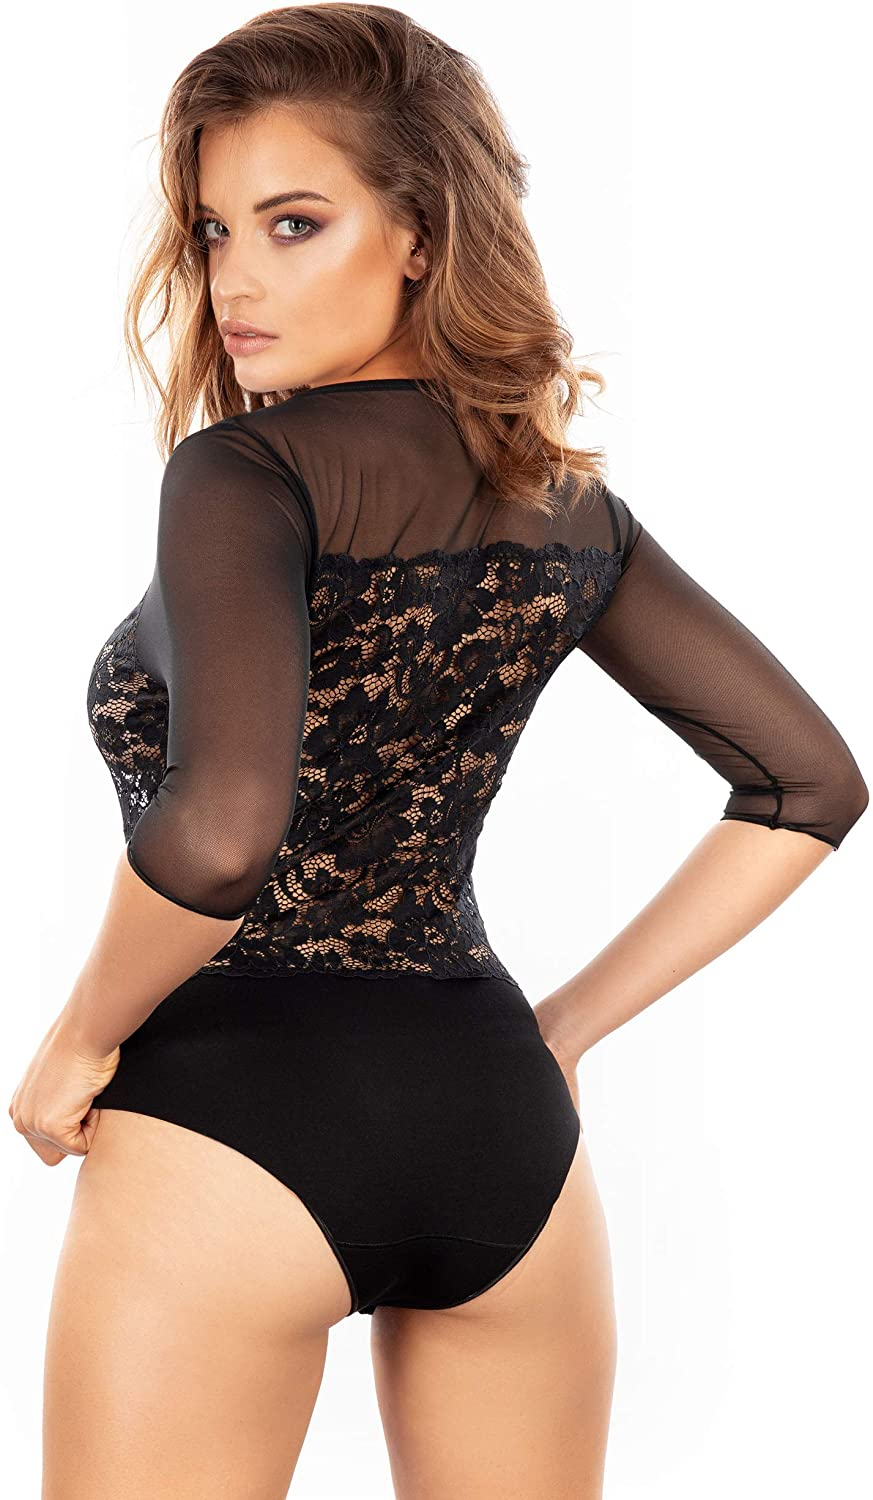 EGI Exclusive Collections Black Lace Bodysuit. Proudly Made in Italy.